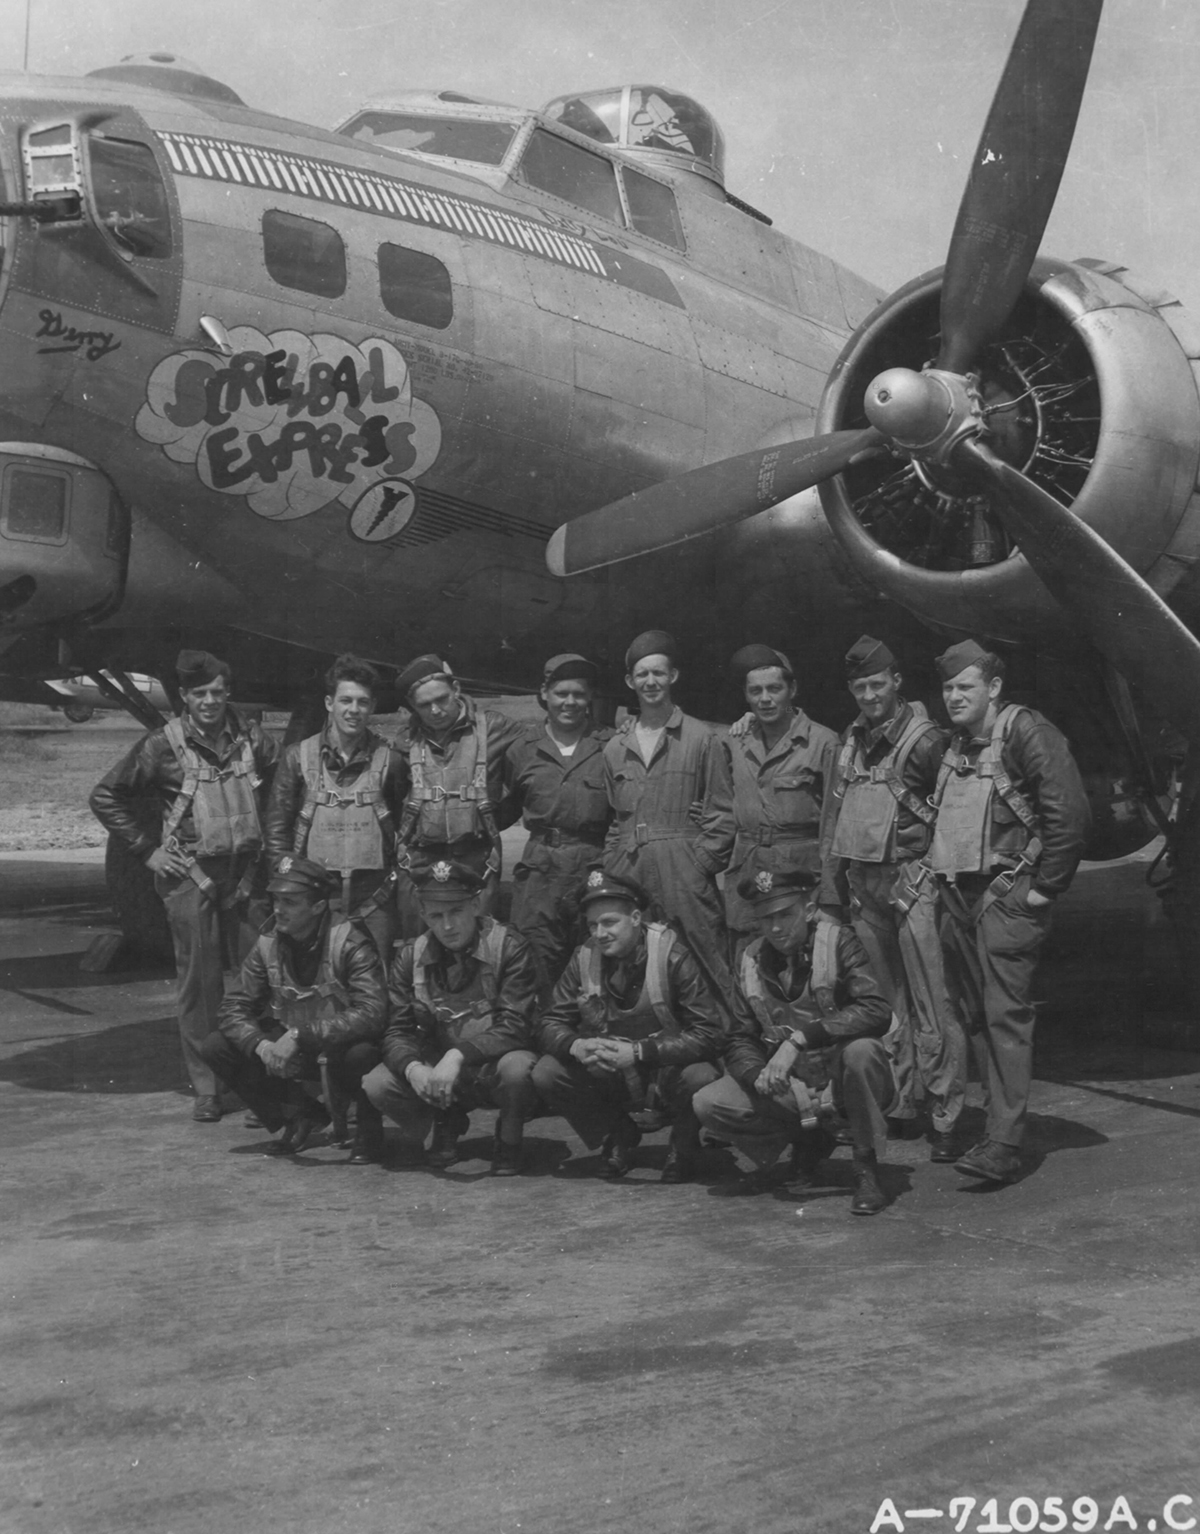 B-17 #42-97128 / Screwball Express